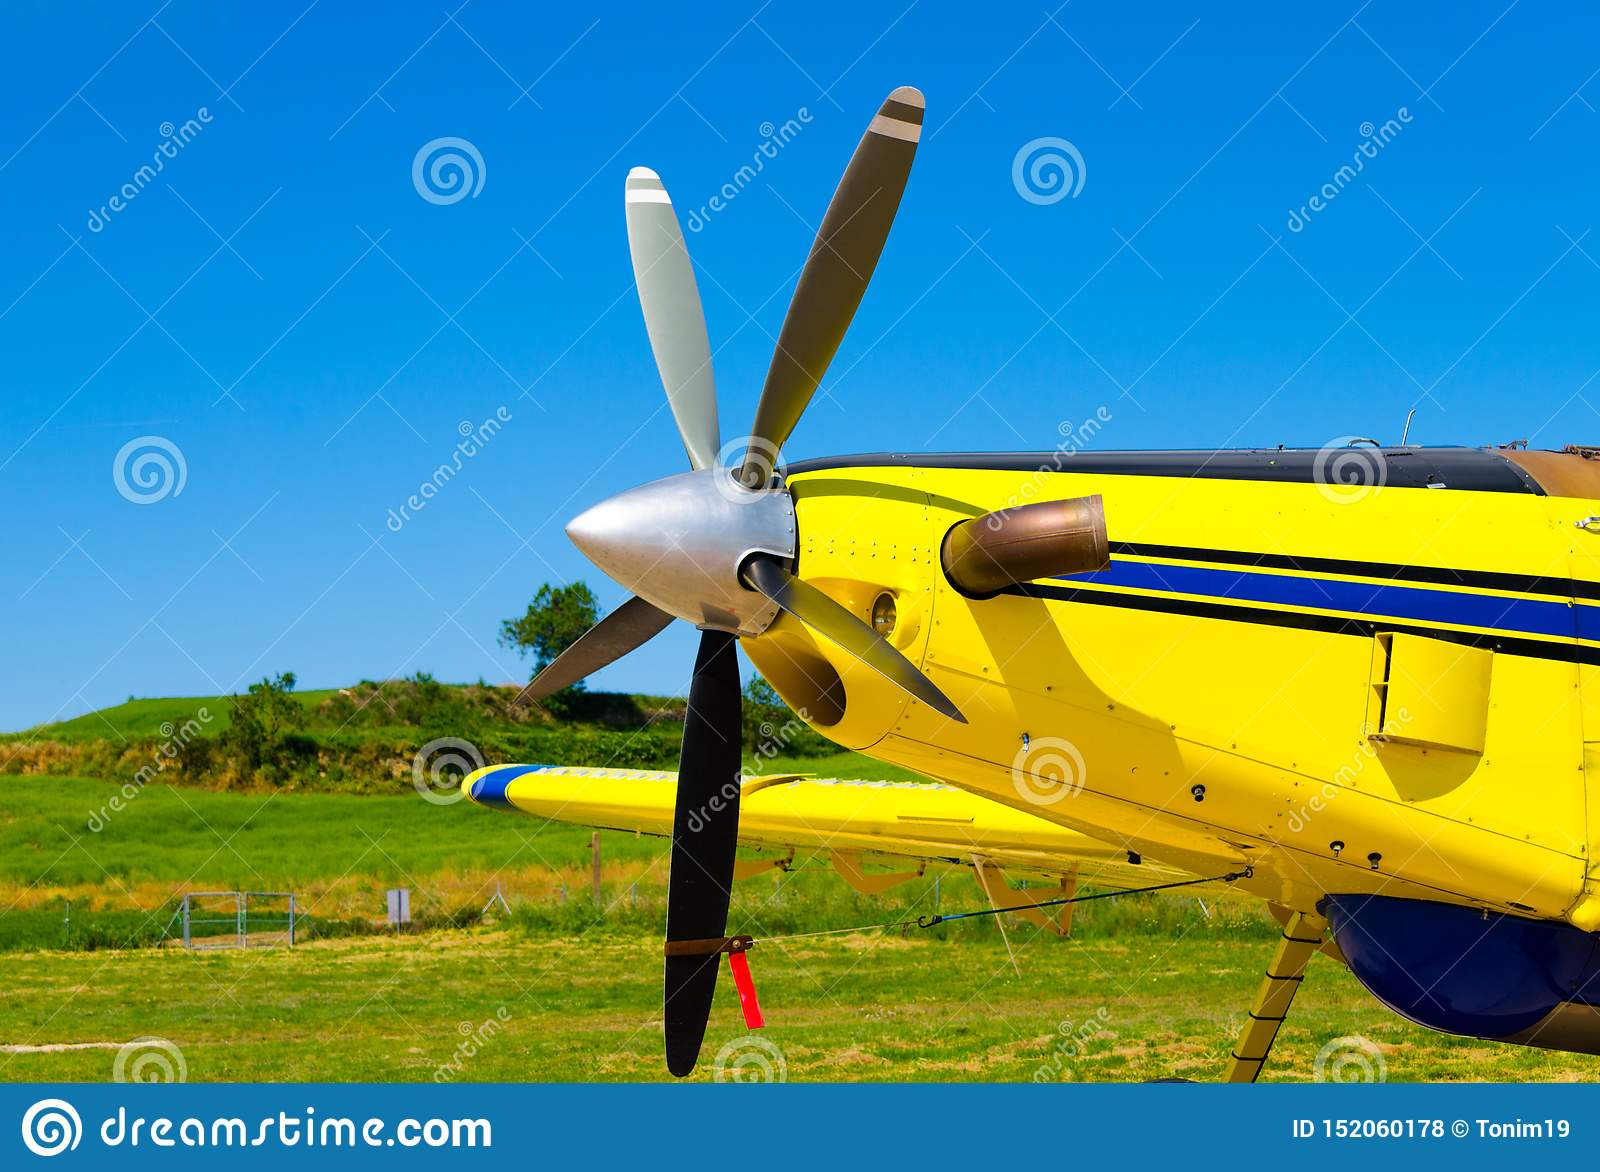 Aircraft propellers, motor with propeller blades